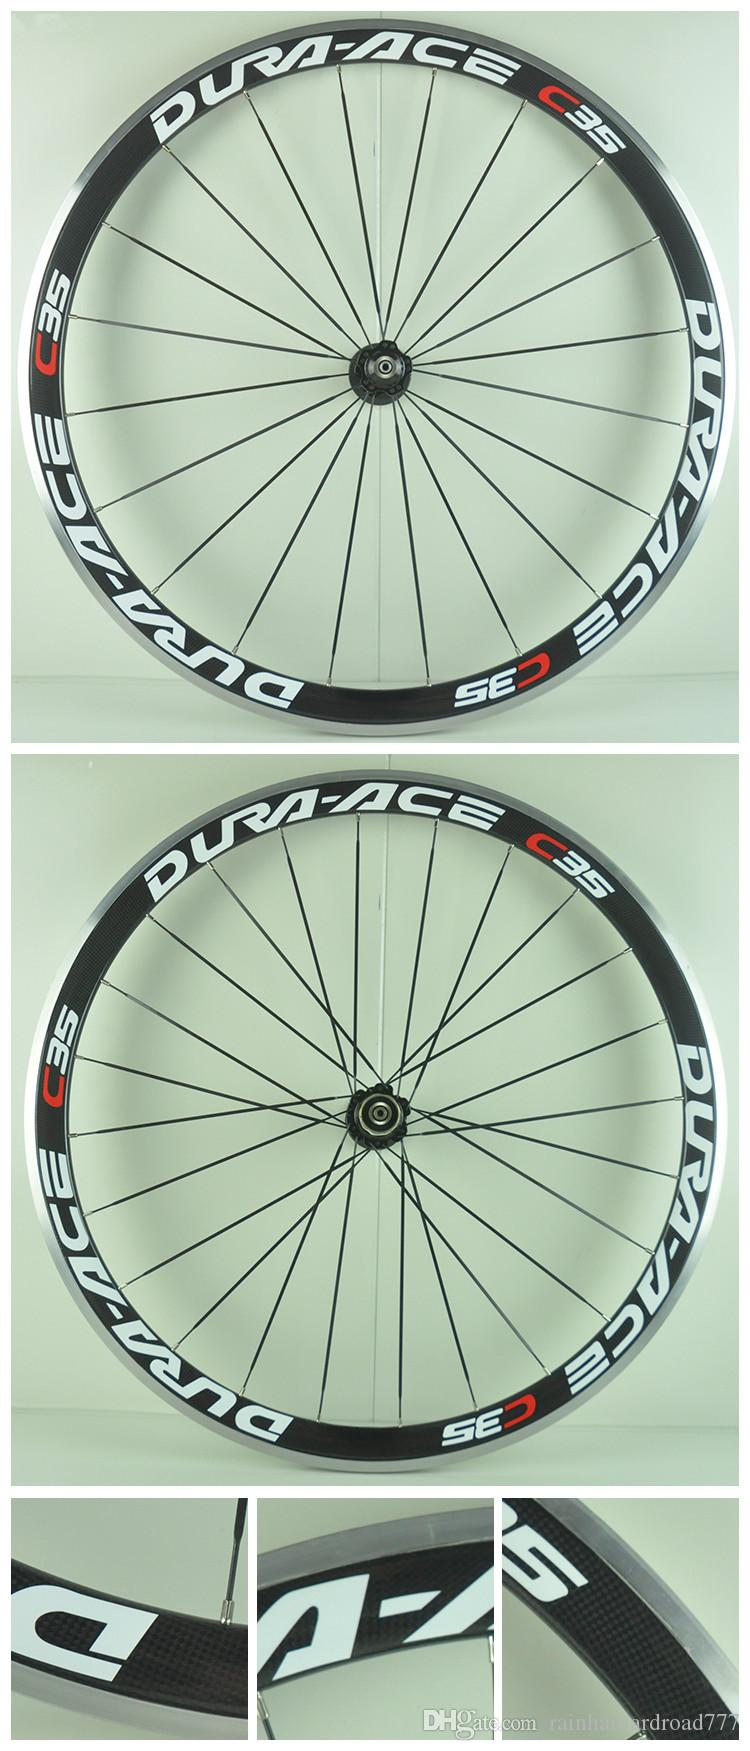 23mm width 700C38mm clincher rim alloy brake surface Road bike carbon wheelset 3K glossy carbon bicycle wheelset with ceramic bearing hubs